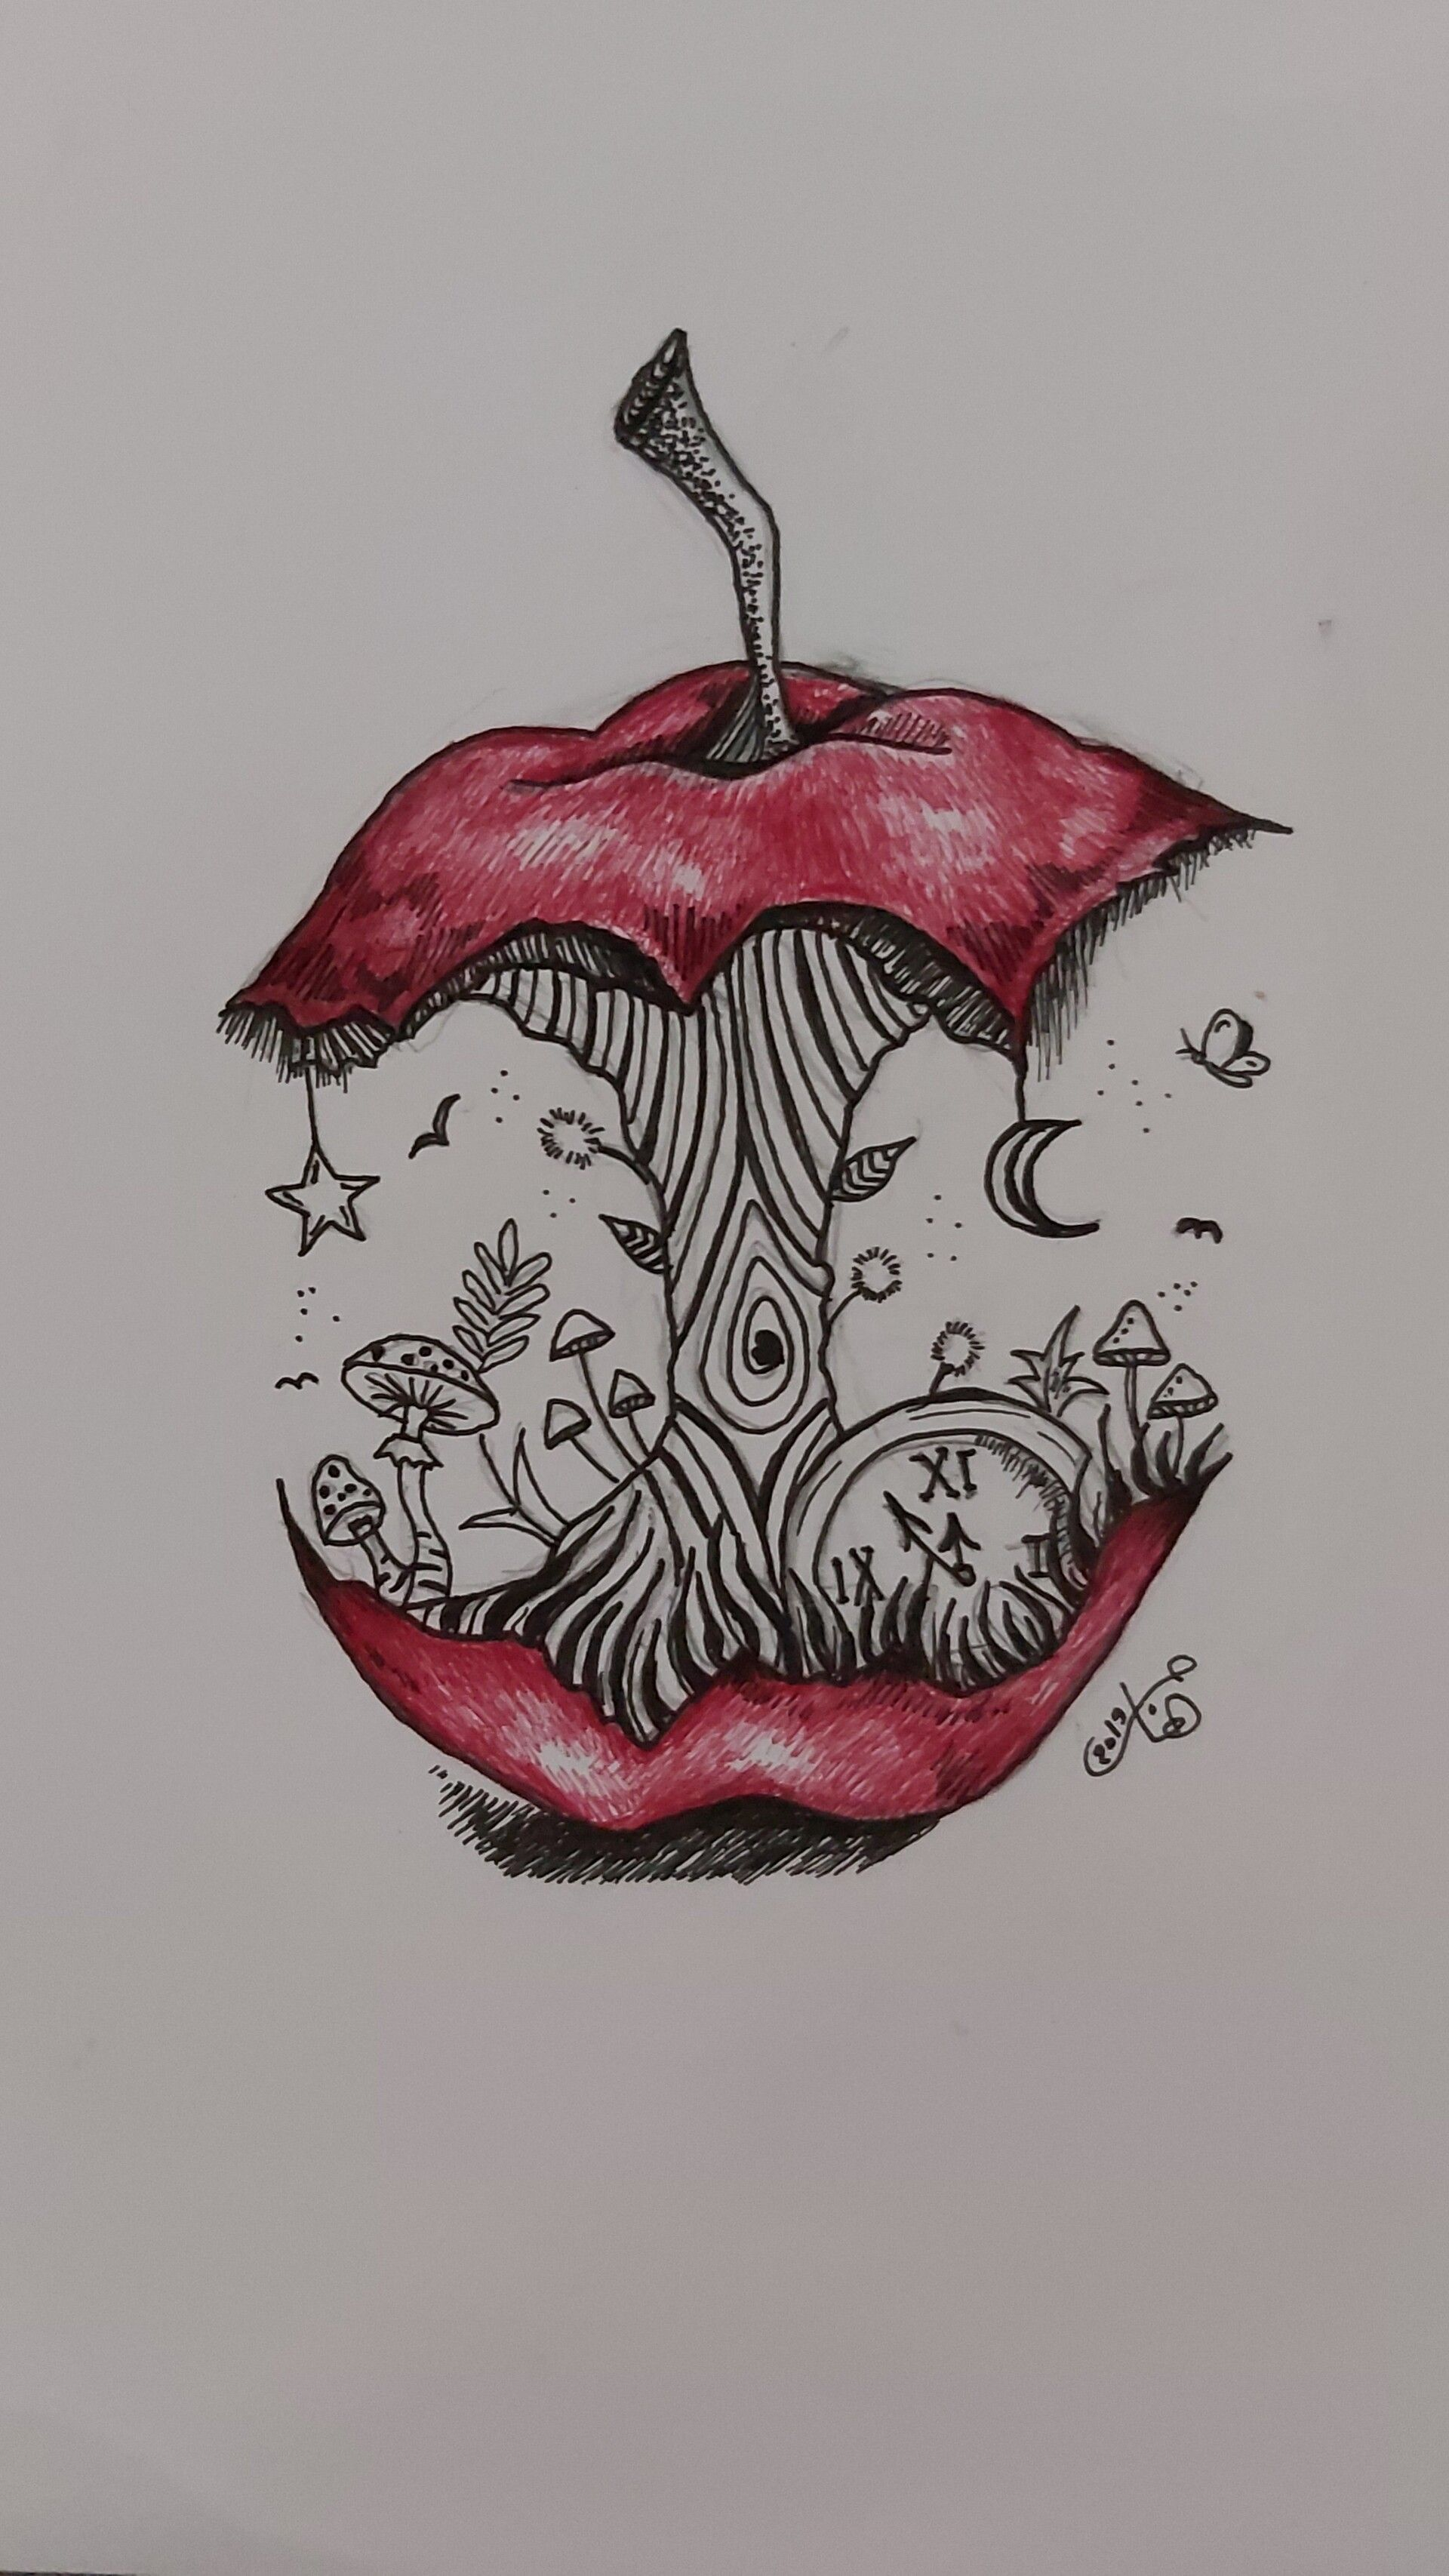 Ripe Inktober Anotherlife By Hagar Mahmouddon T Try To Be Perfect Art Drawings Sketches Creative Dark Art Drawings Art Sketches Doodles